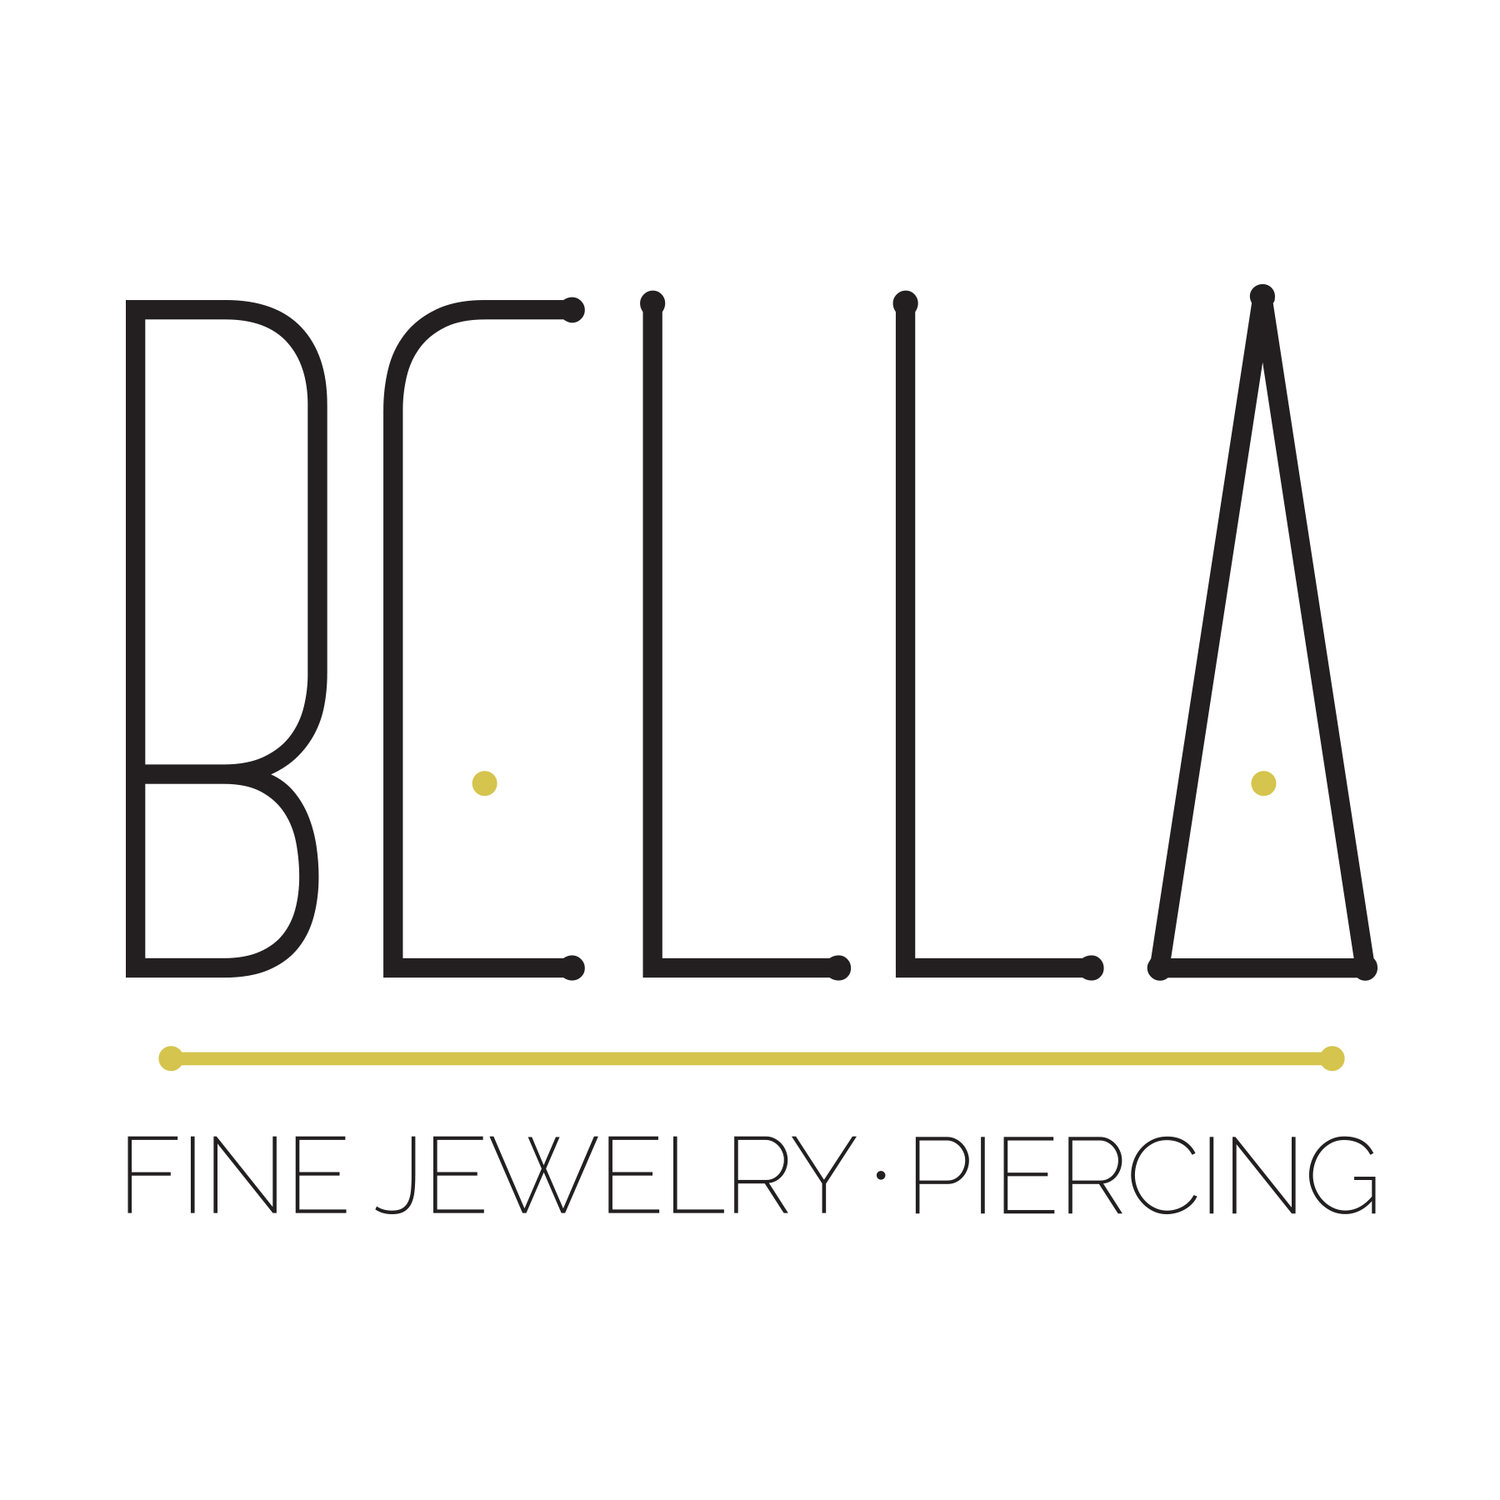 bella fine jewelry and piercing